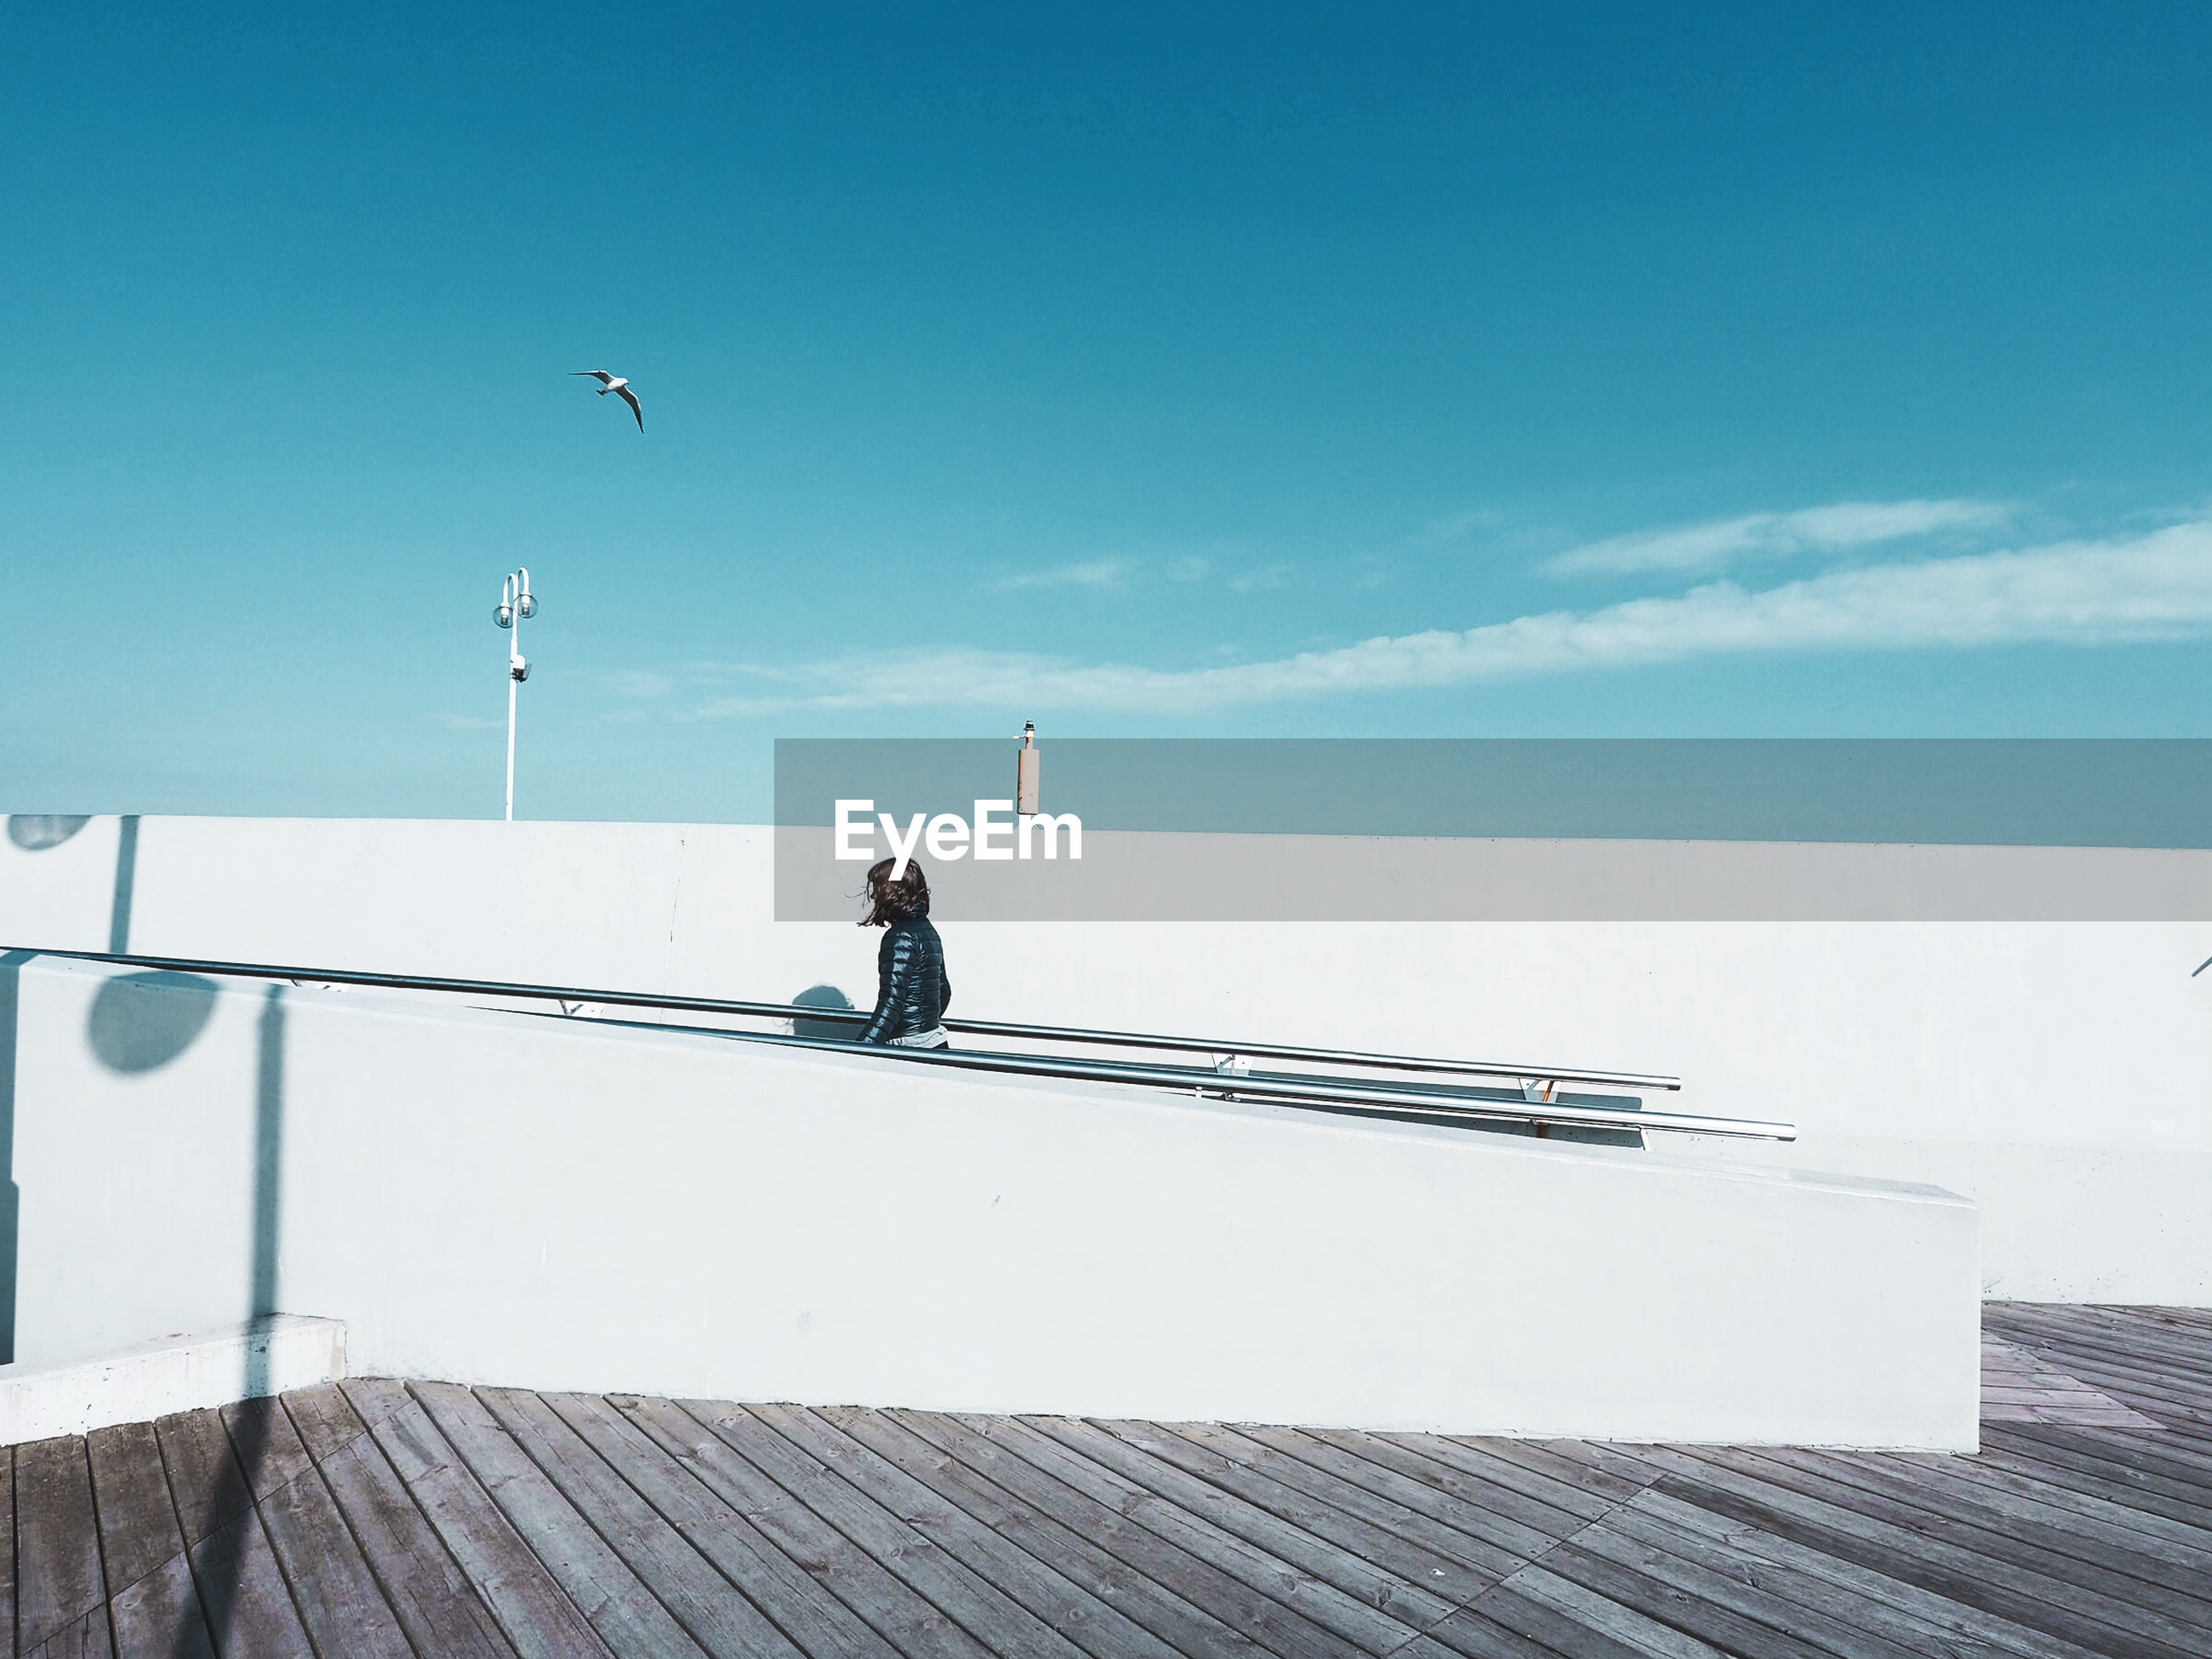 WeekOnEyeEm Beauty In Nature Bird Clear Sky Day Full Length Horizon Over Water Leisure Activity Men Nature One Person Outdoors People Real People Sea Shadow Sky Water The Week On EyeEm Urban Architecture By BJP